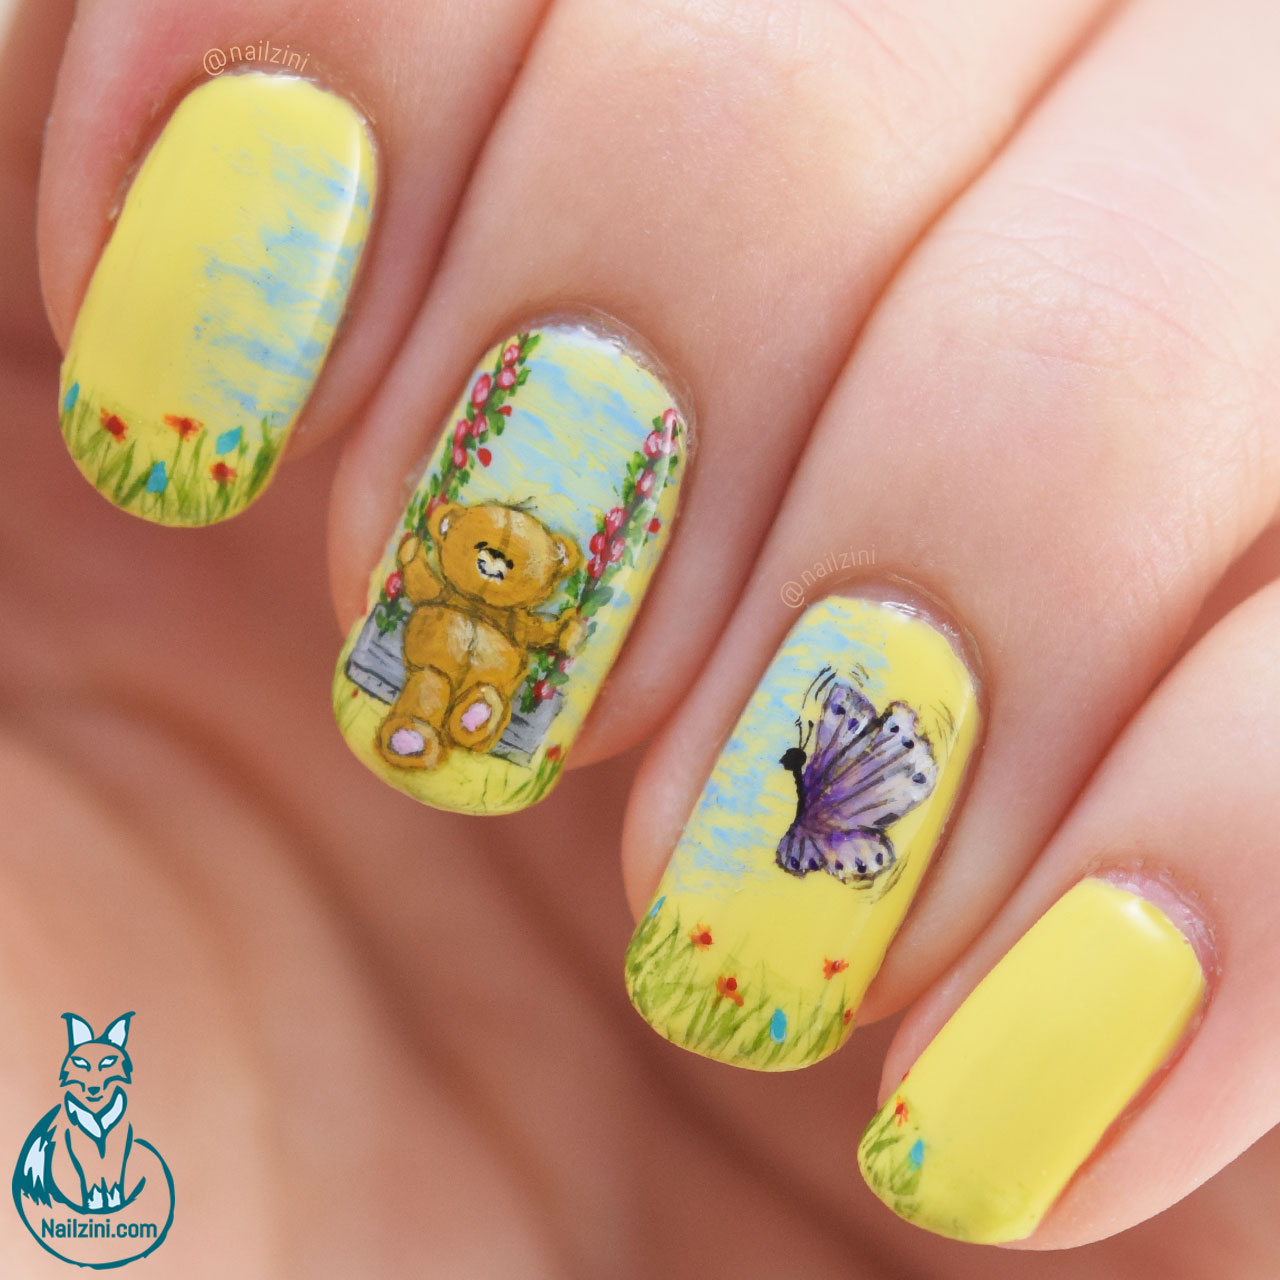 Adorable Swinging Bear Nail Art Nailzini